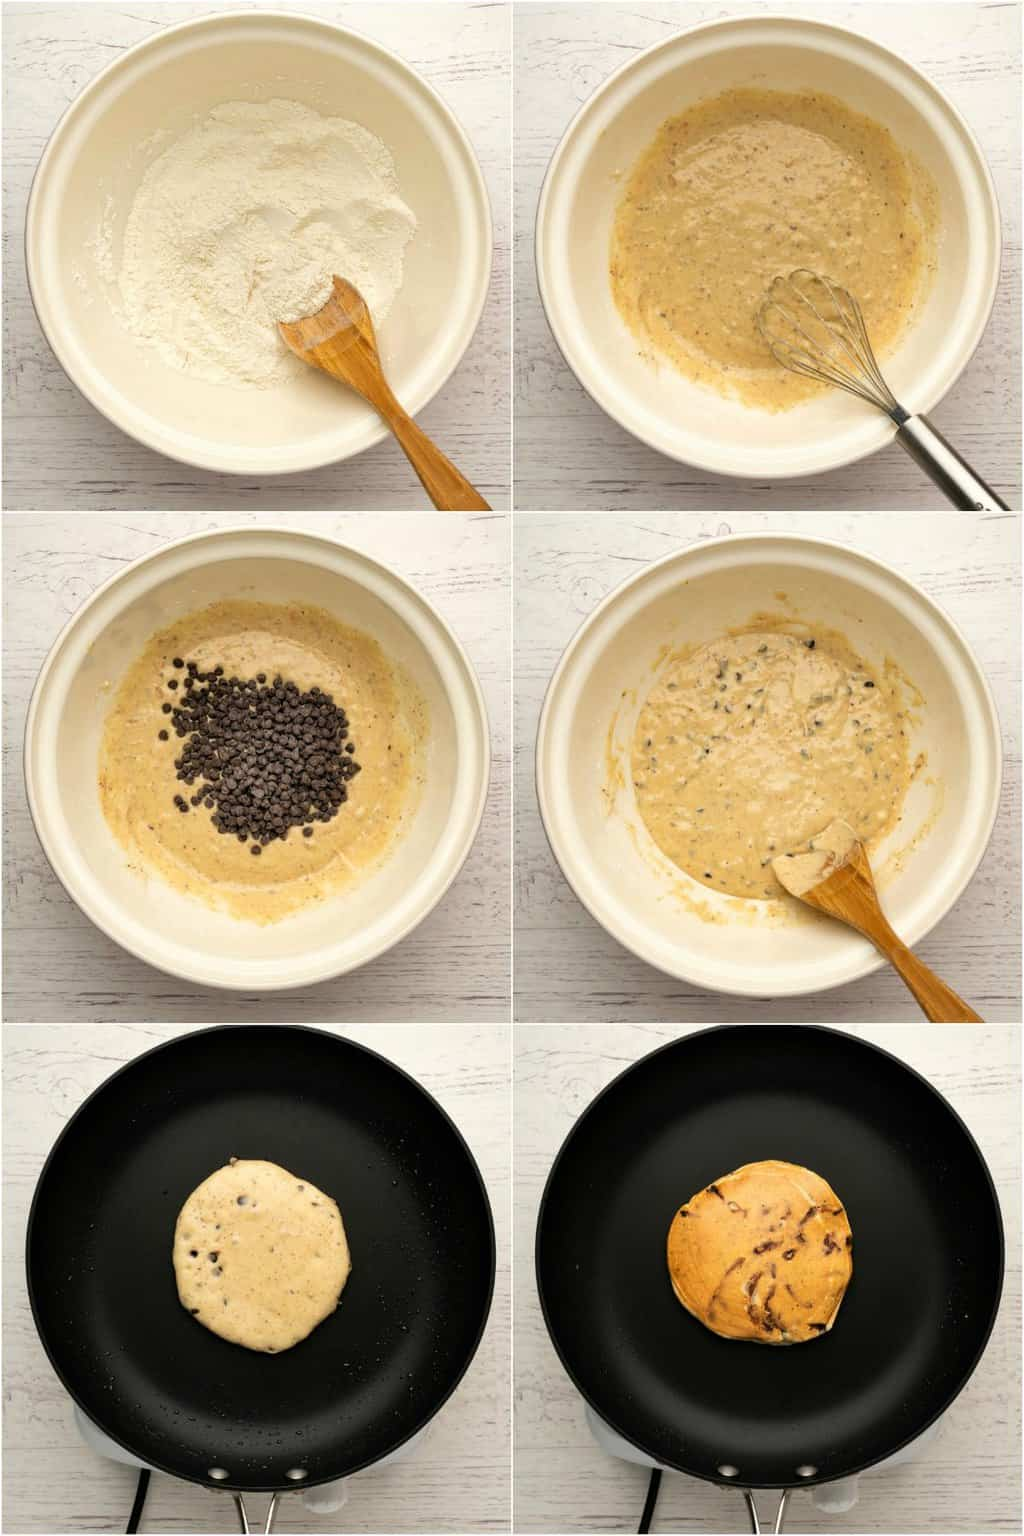 Step by step process photo collage of making vegan peanut butter pancakes.